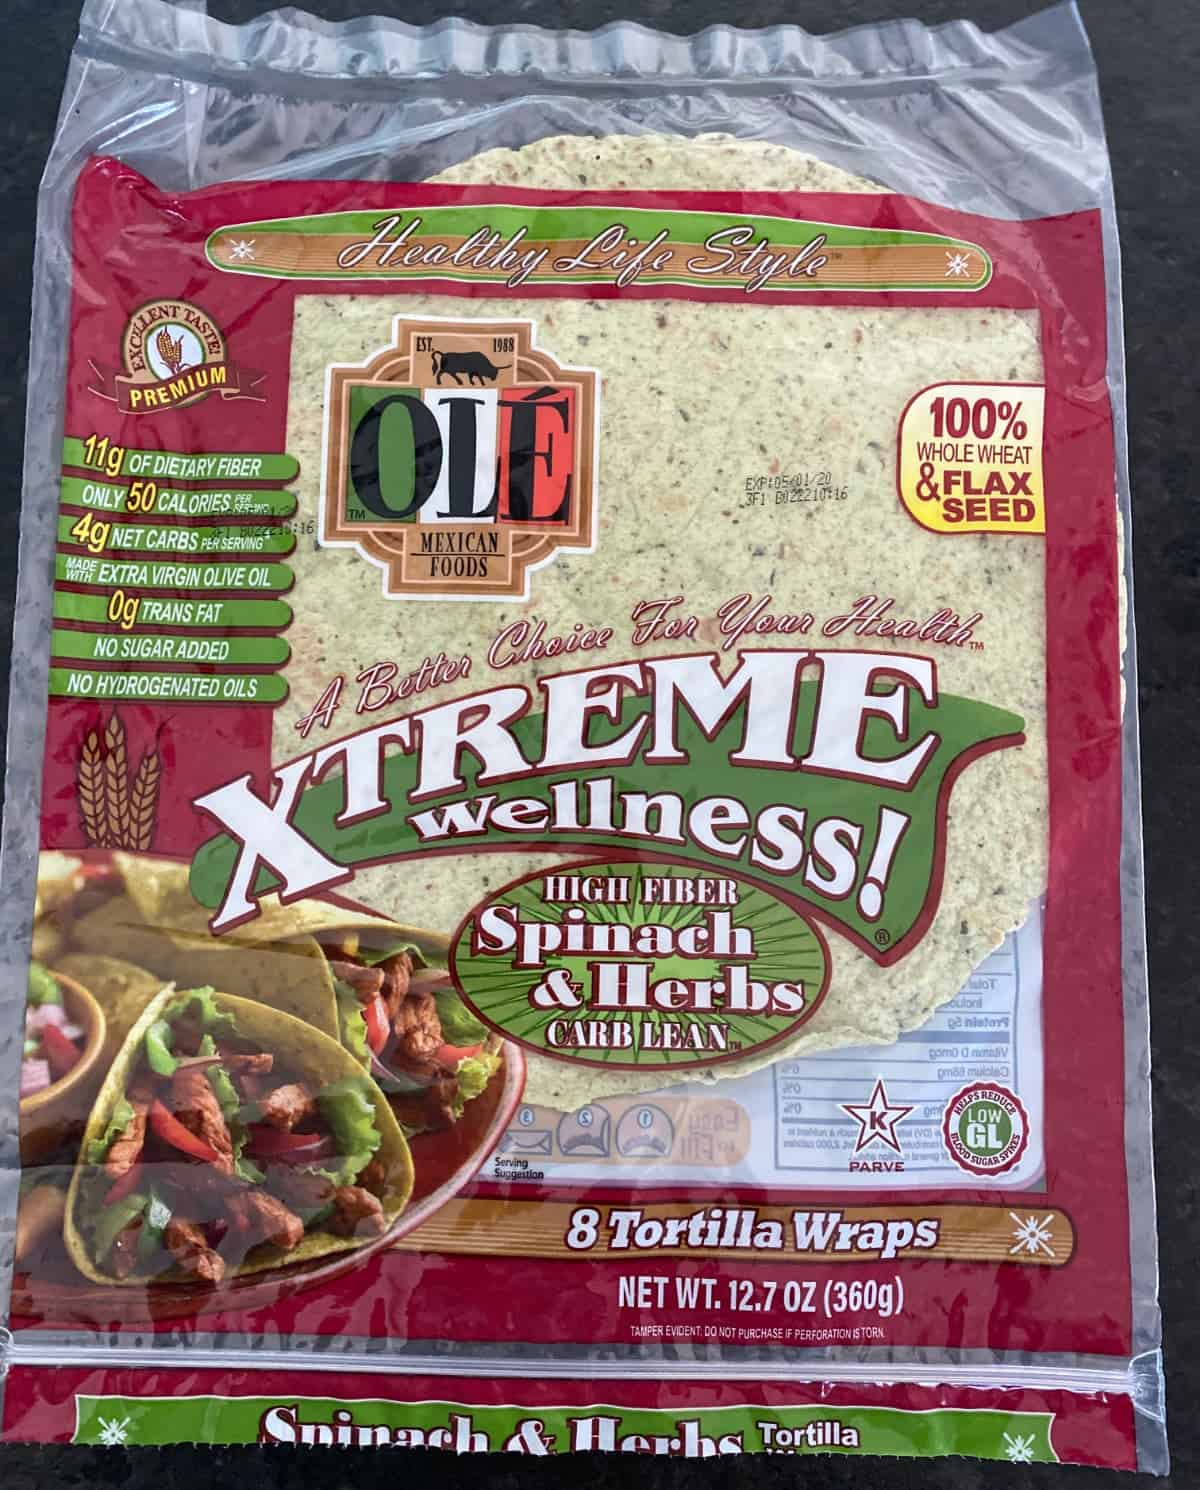 Package of Ole Xtreme Wellness brand spinach and herb tortillas.